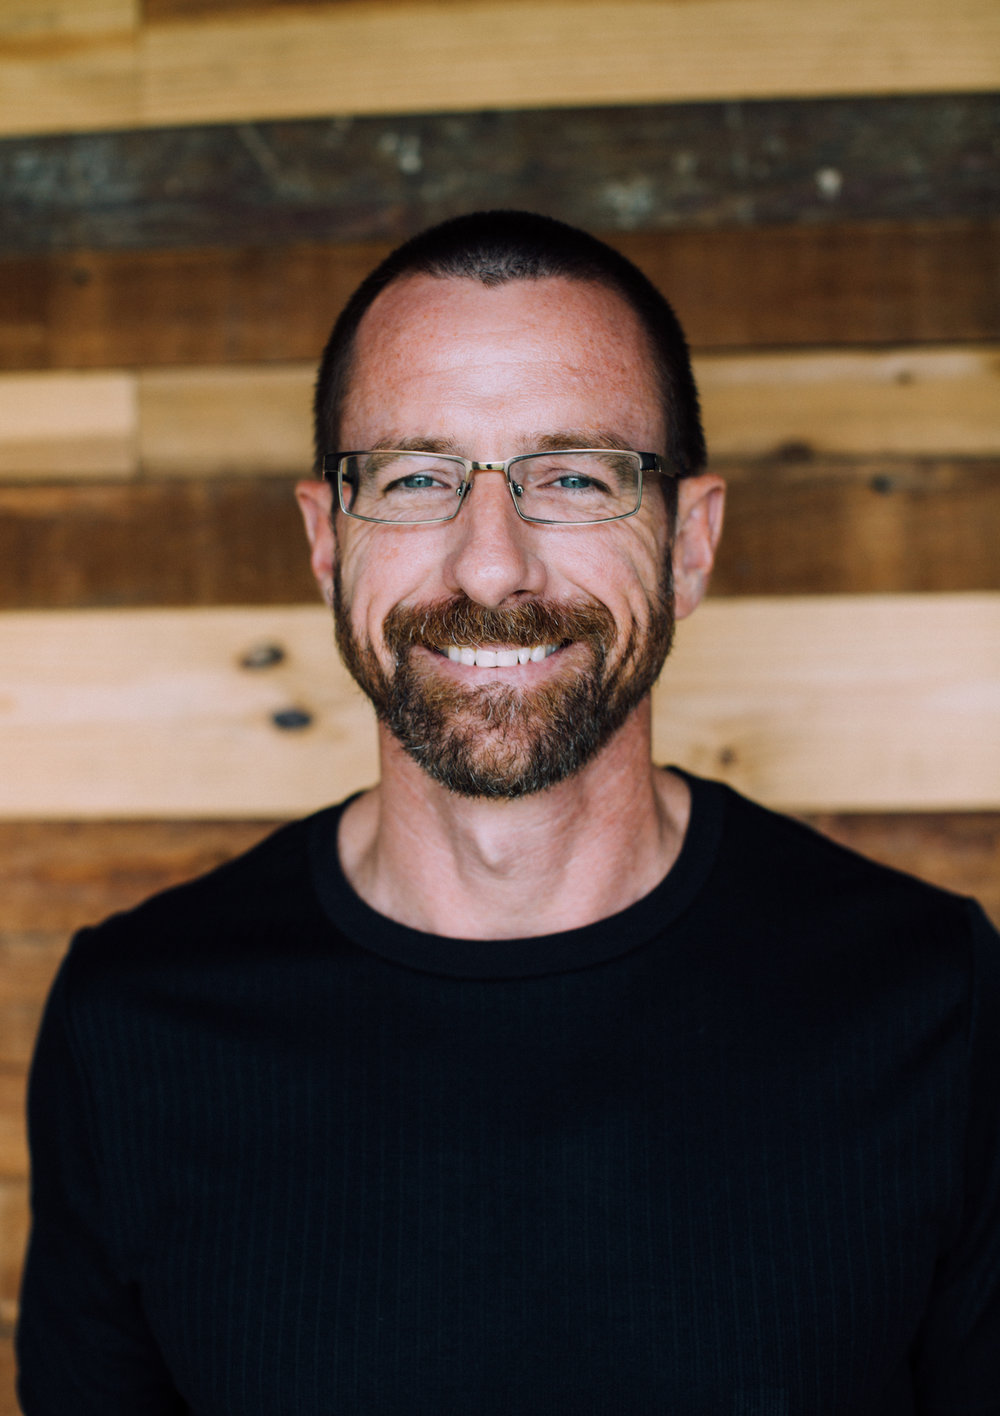 CHAD BIRD - Chad is an author and speaker devoted to honest Christianity that addresses the realities of life. The Gospel is for broken, messed up people like himself.